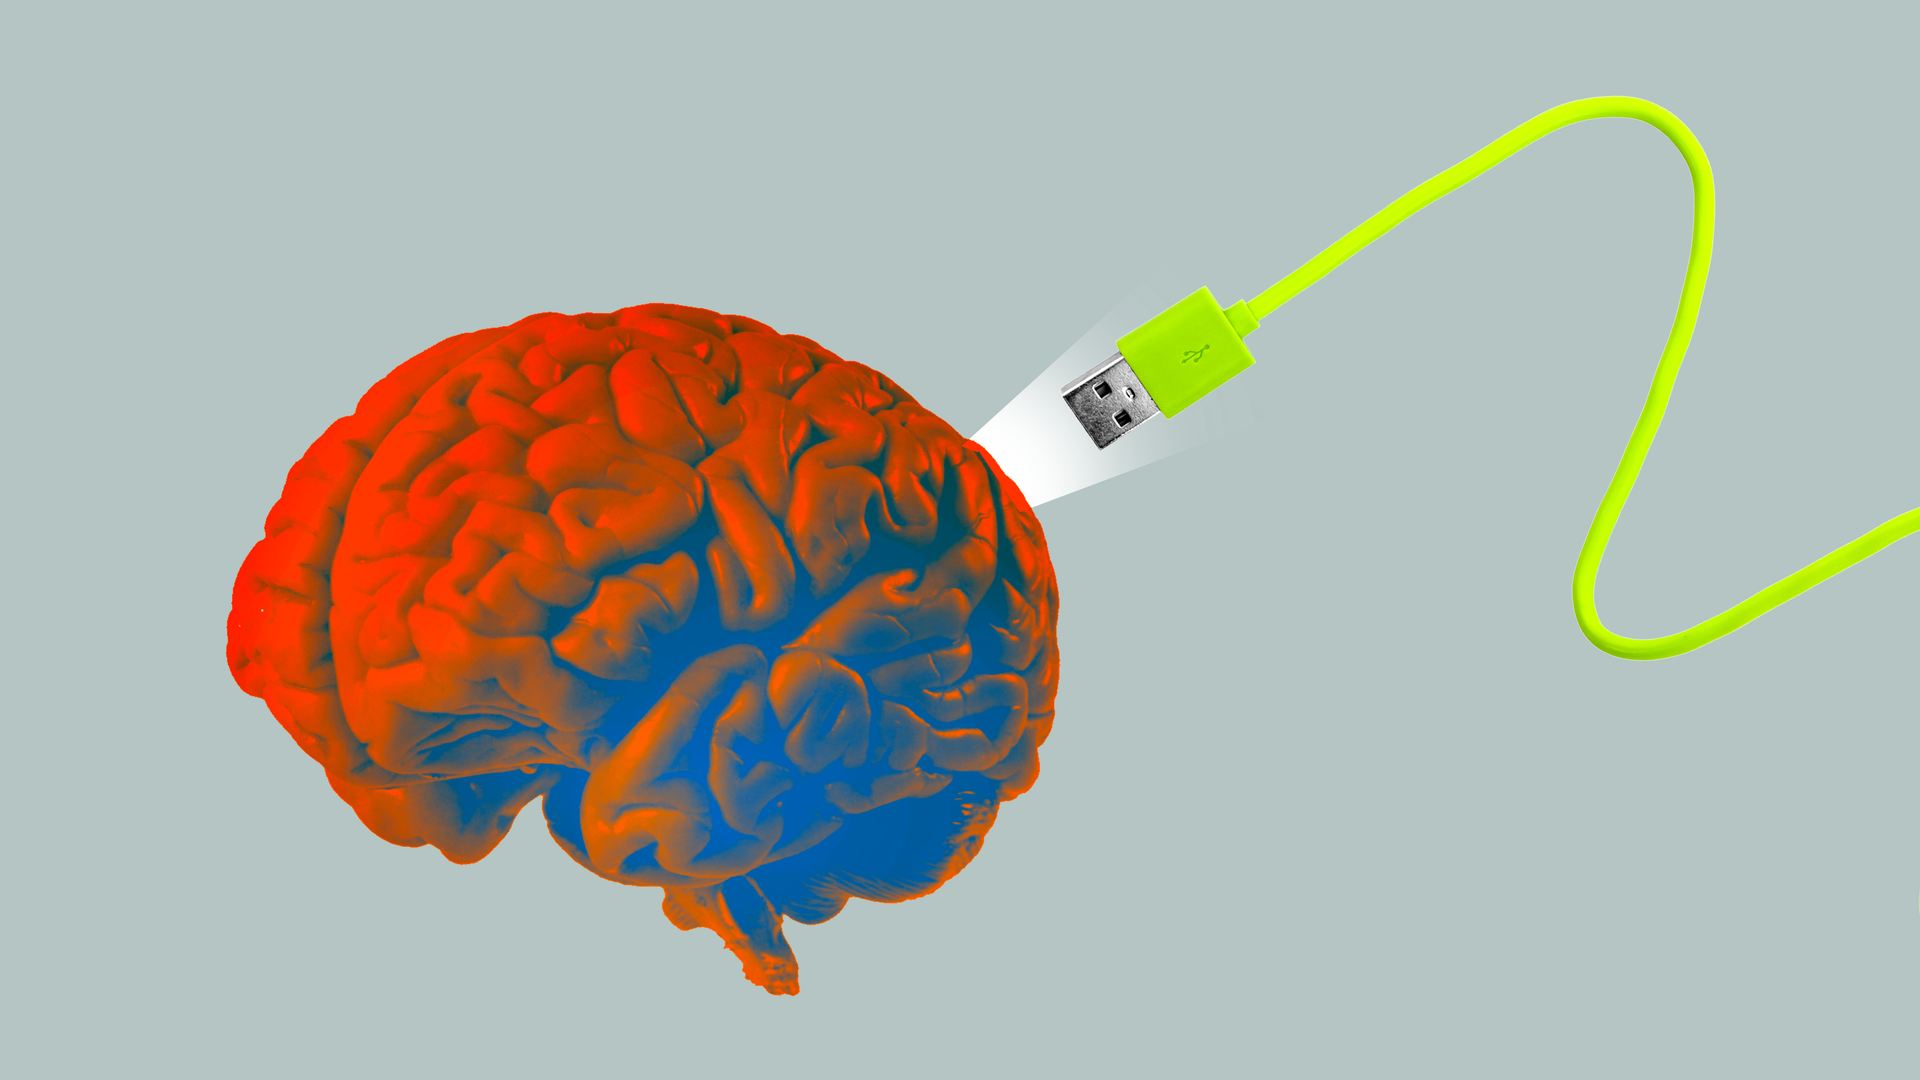 A usb cable plugging into a brain.